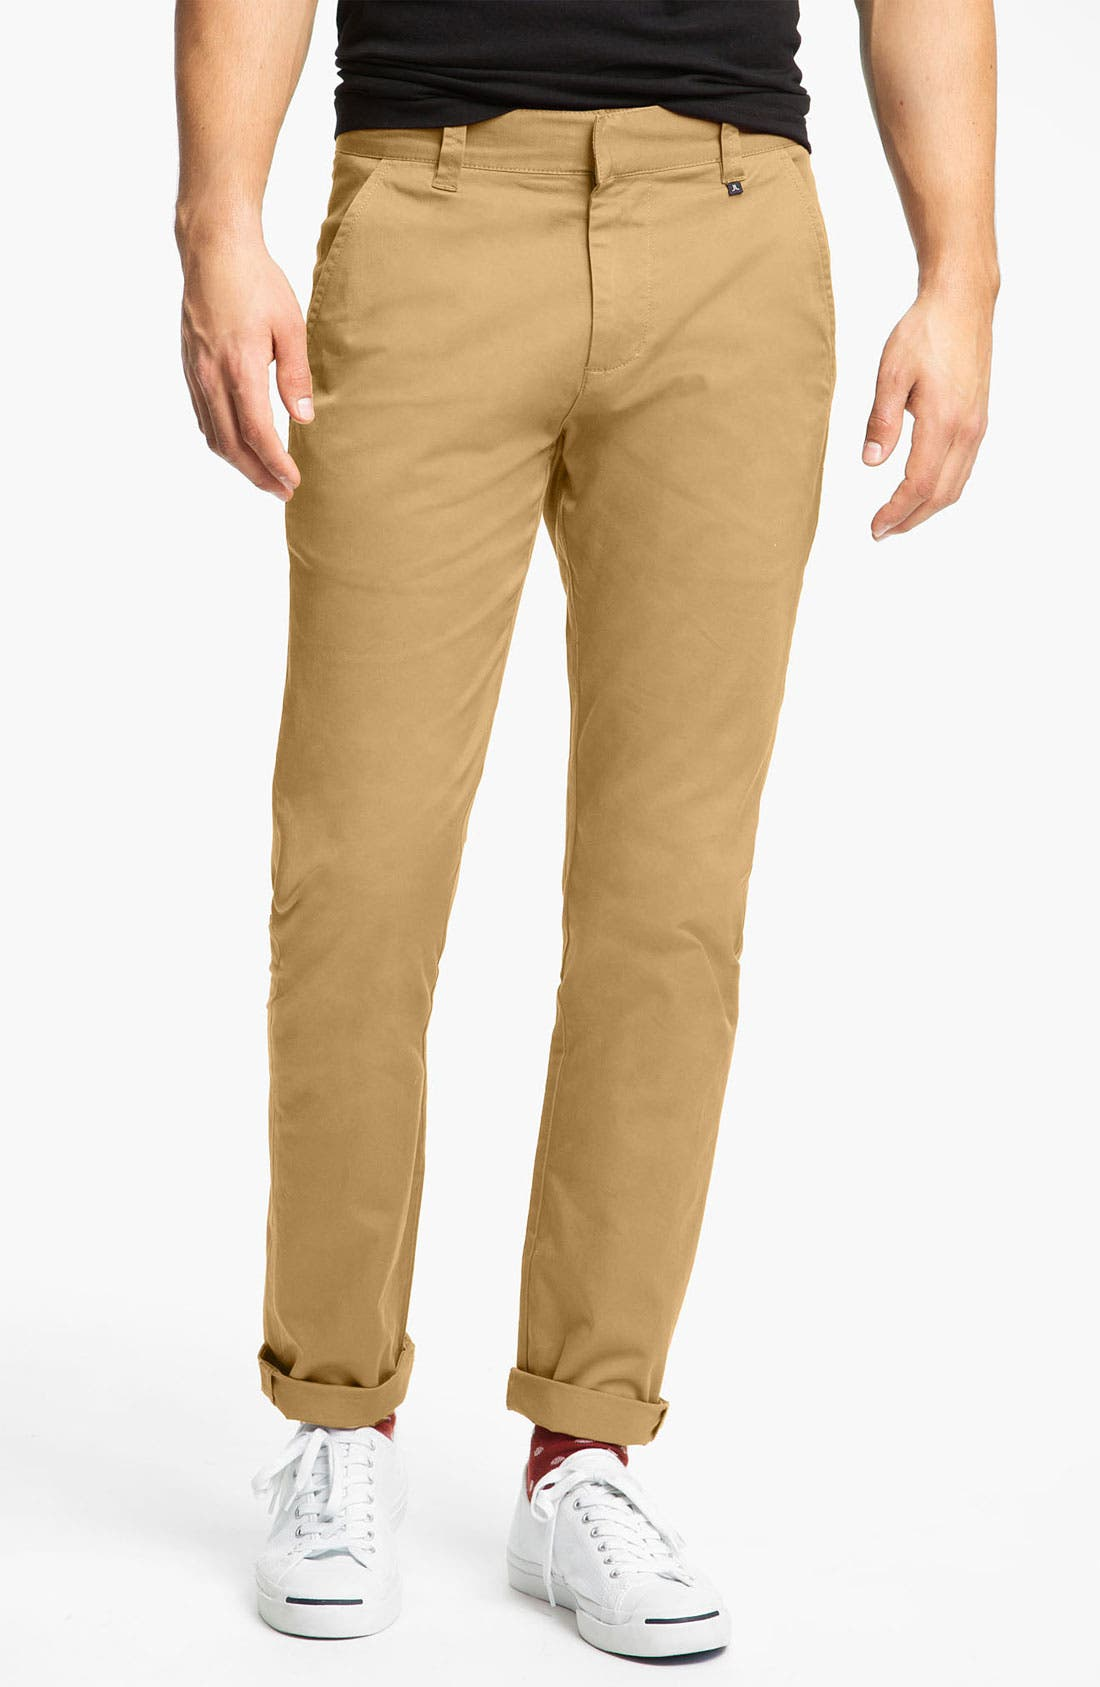 Alternate Image 1 Selected - WeSC 'Eddy' Slim Fit Chinos